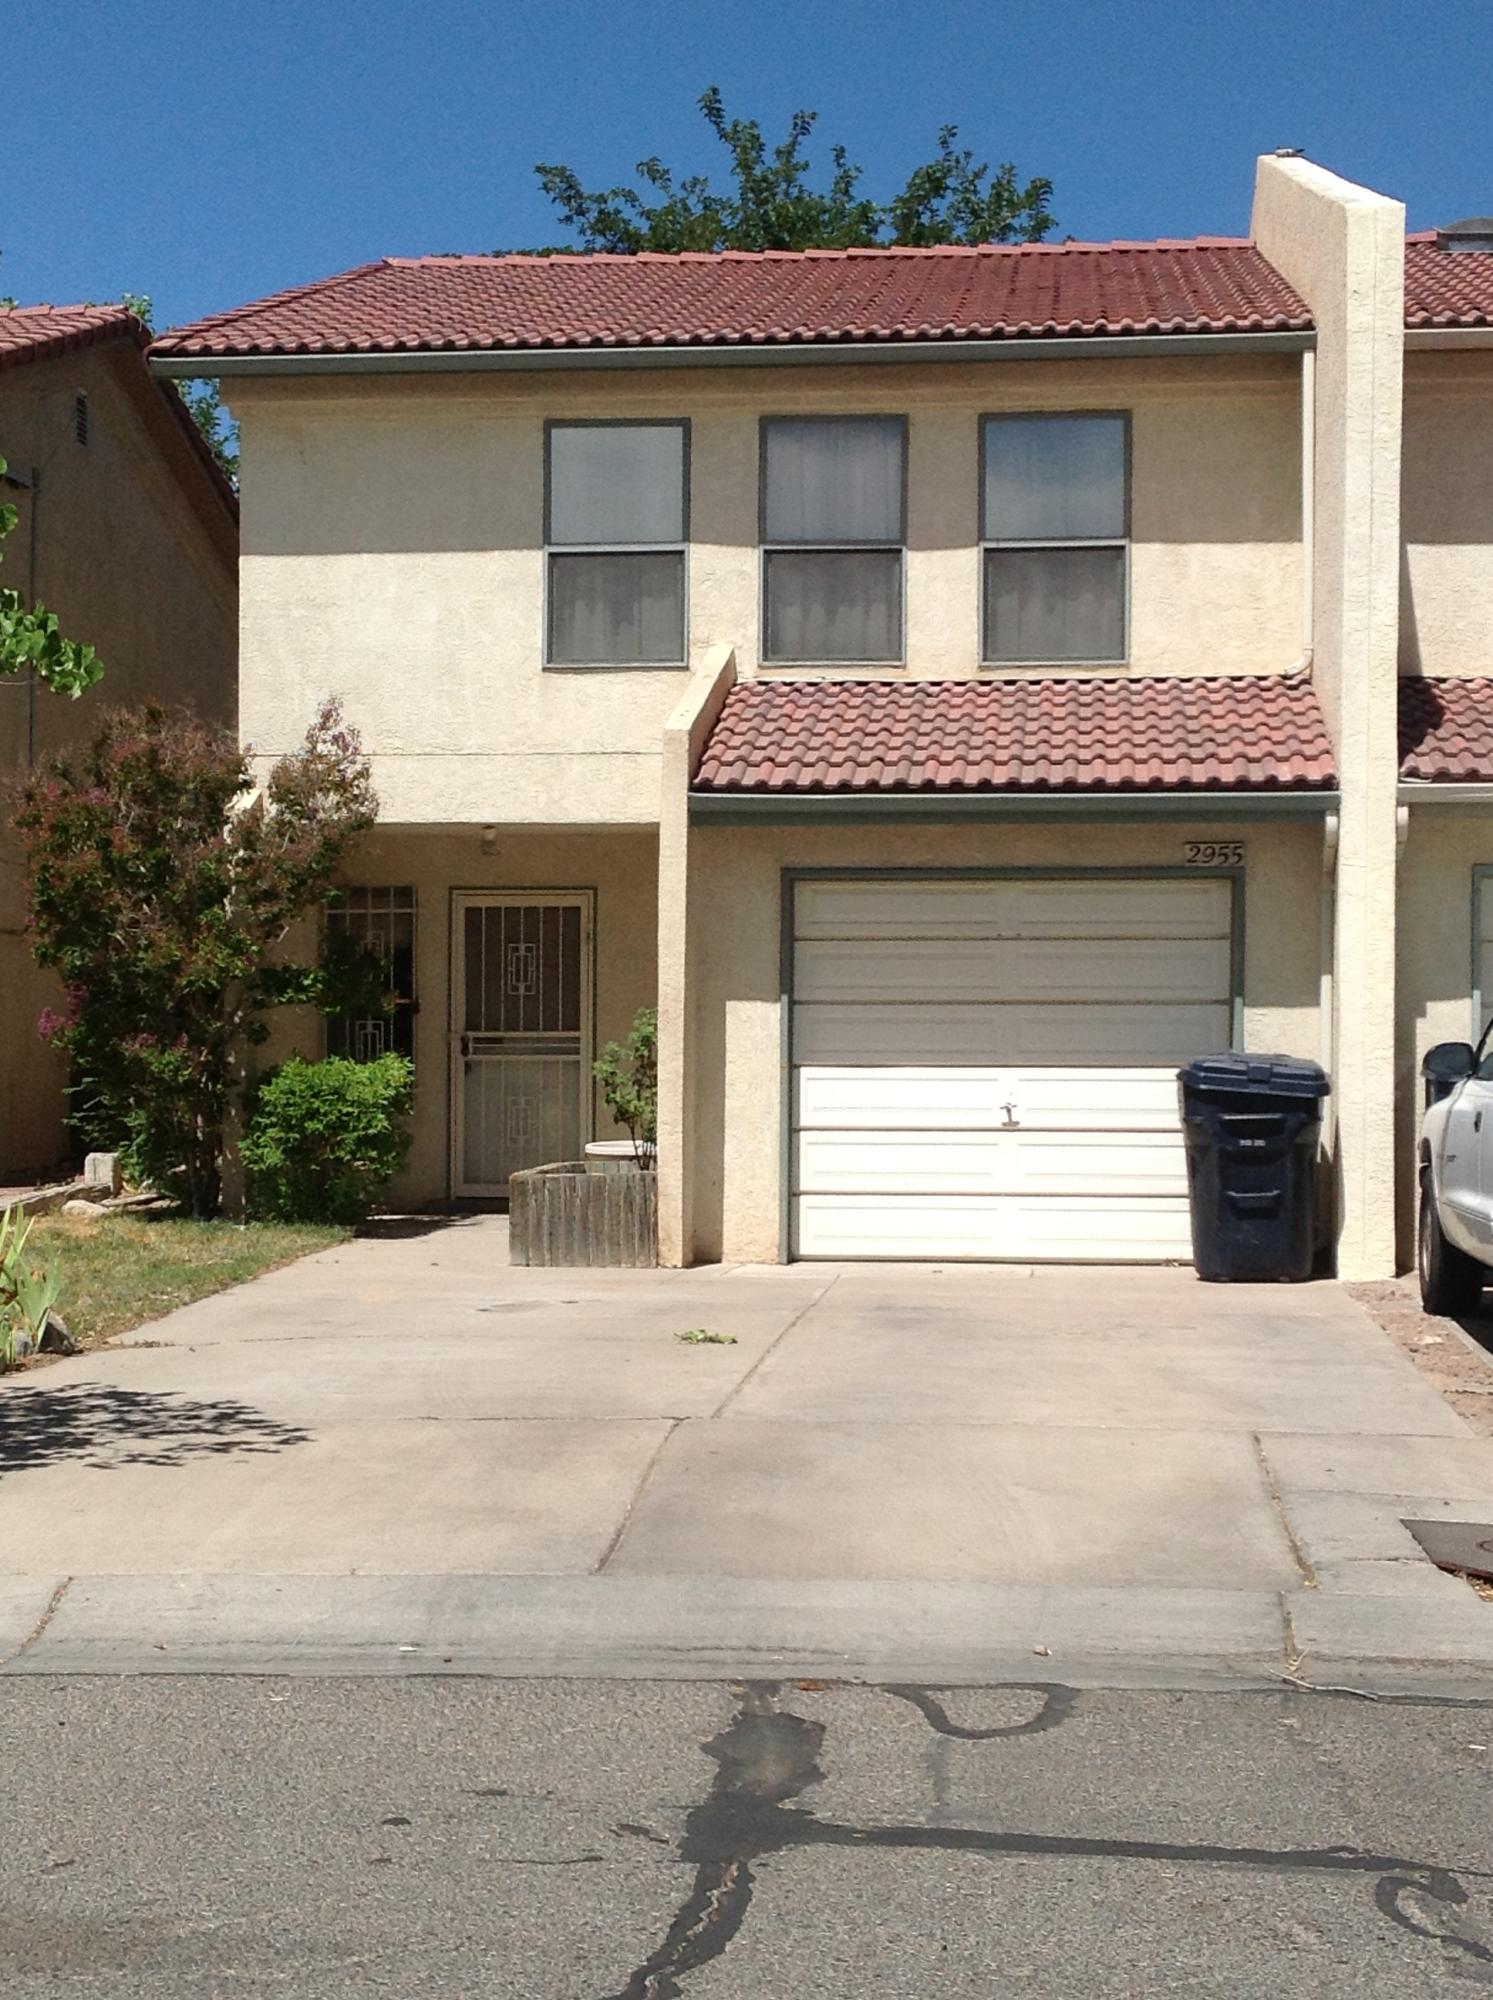 2955 NW Bright Star Drive, Northwest Albuquerque and Northwest Heights, New Mexico